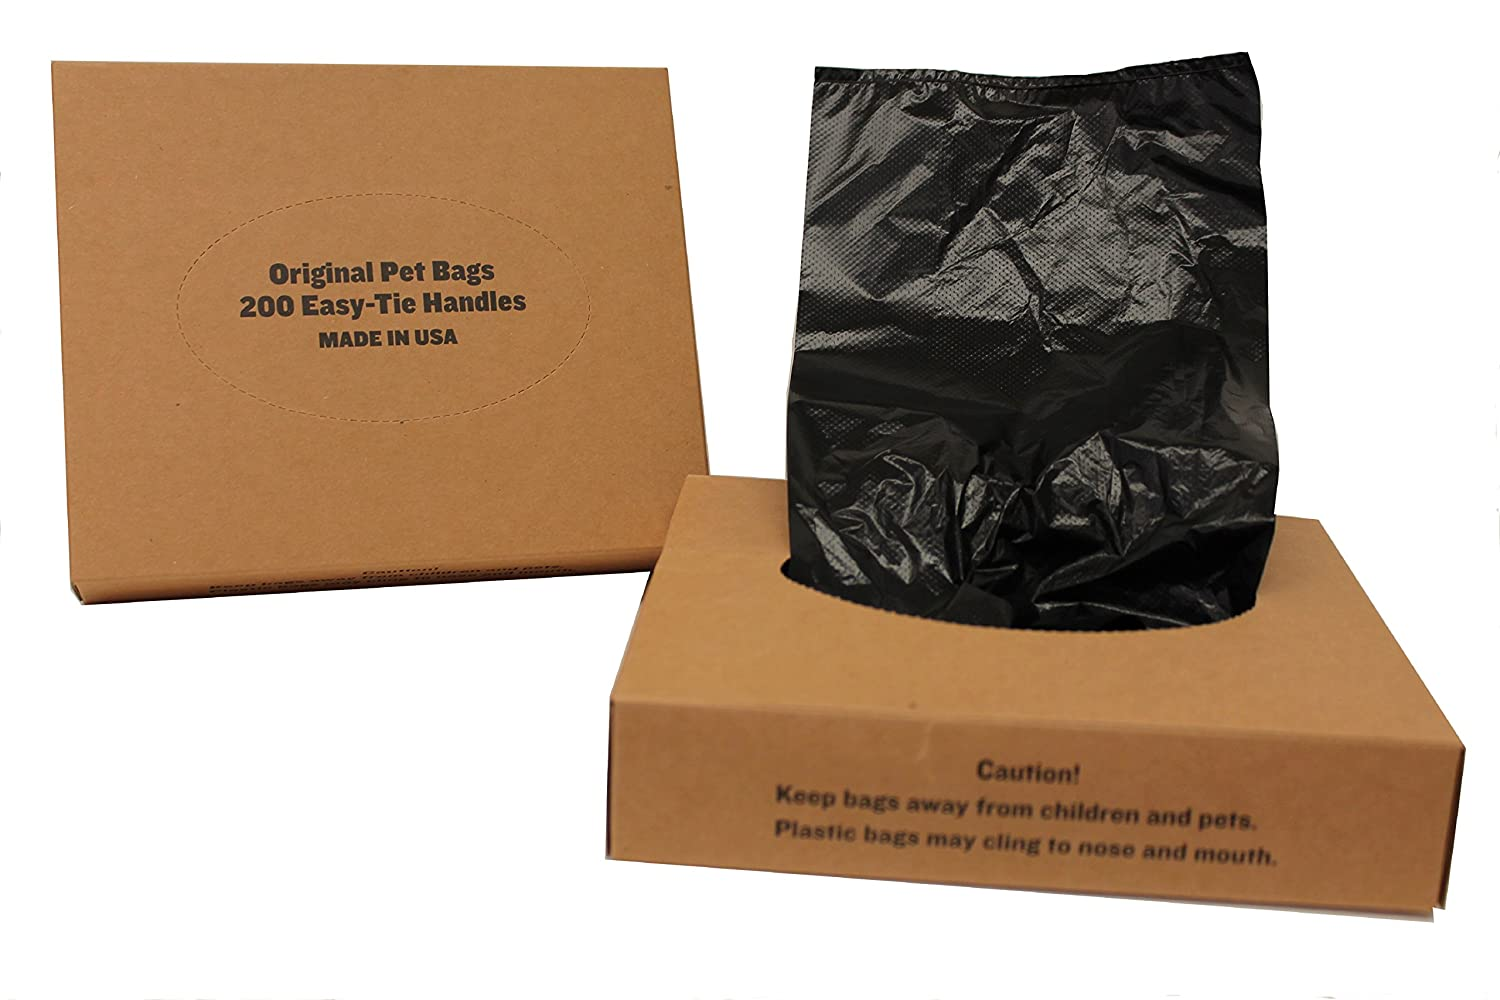 "Originalpetbags 400 Black Unscented Easy Open & Easy-tie Handle. Large 15"" Long, Strong Leak- Proof Poop Bags, Dog Waste Bags Made in USA (not on rolls)"